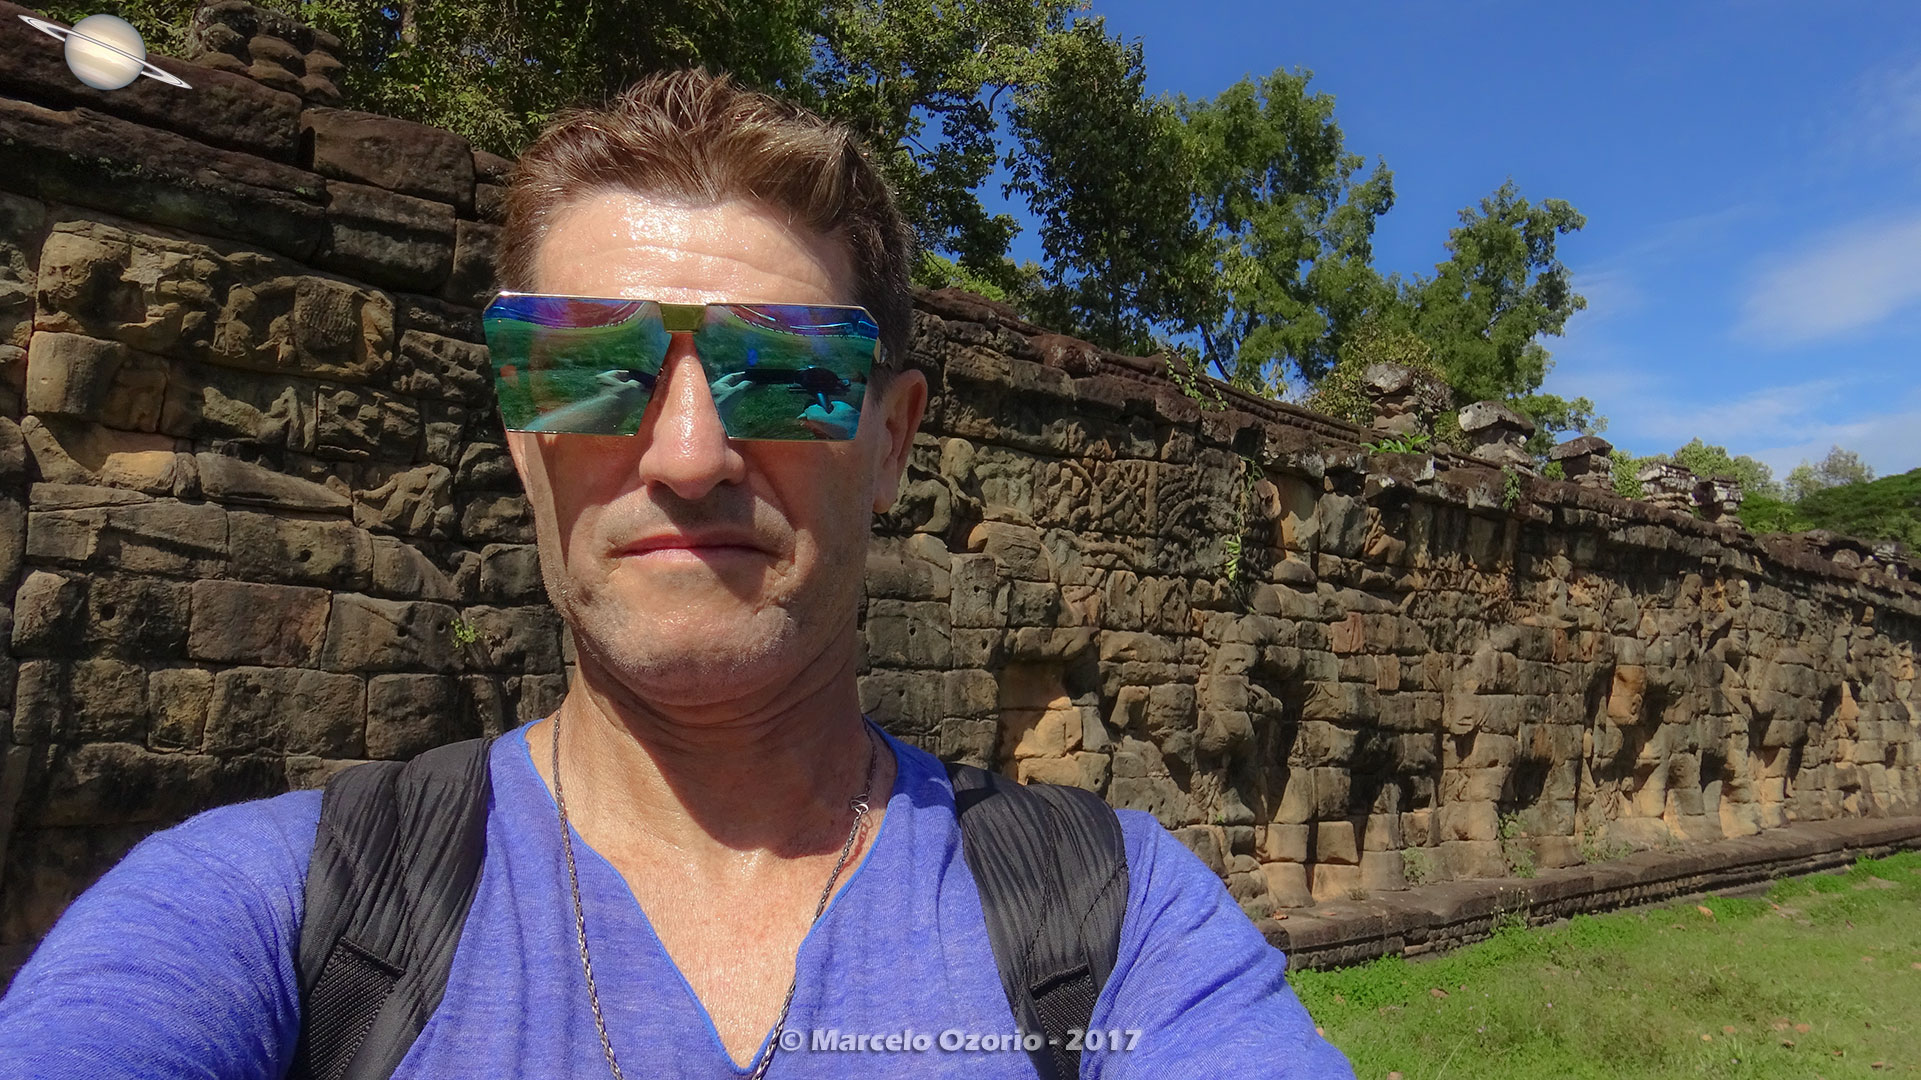 Marcelo Ozorio at Terrace of Elephants - Siem Reap - Cambodia